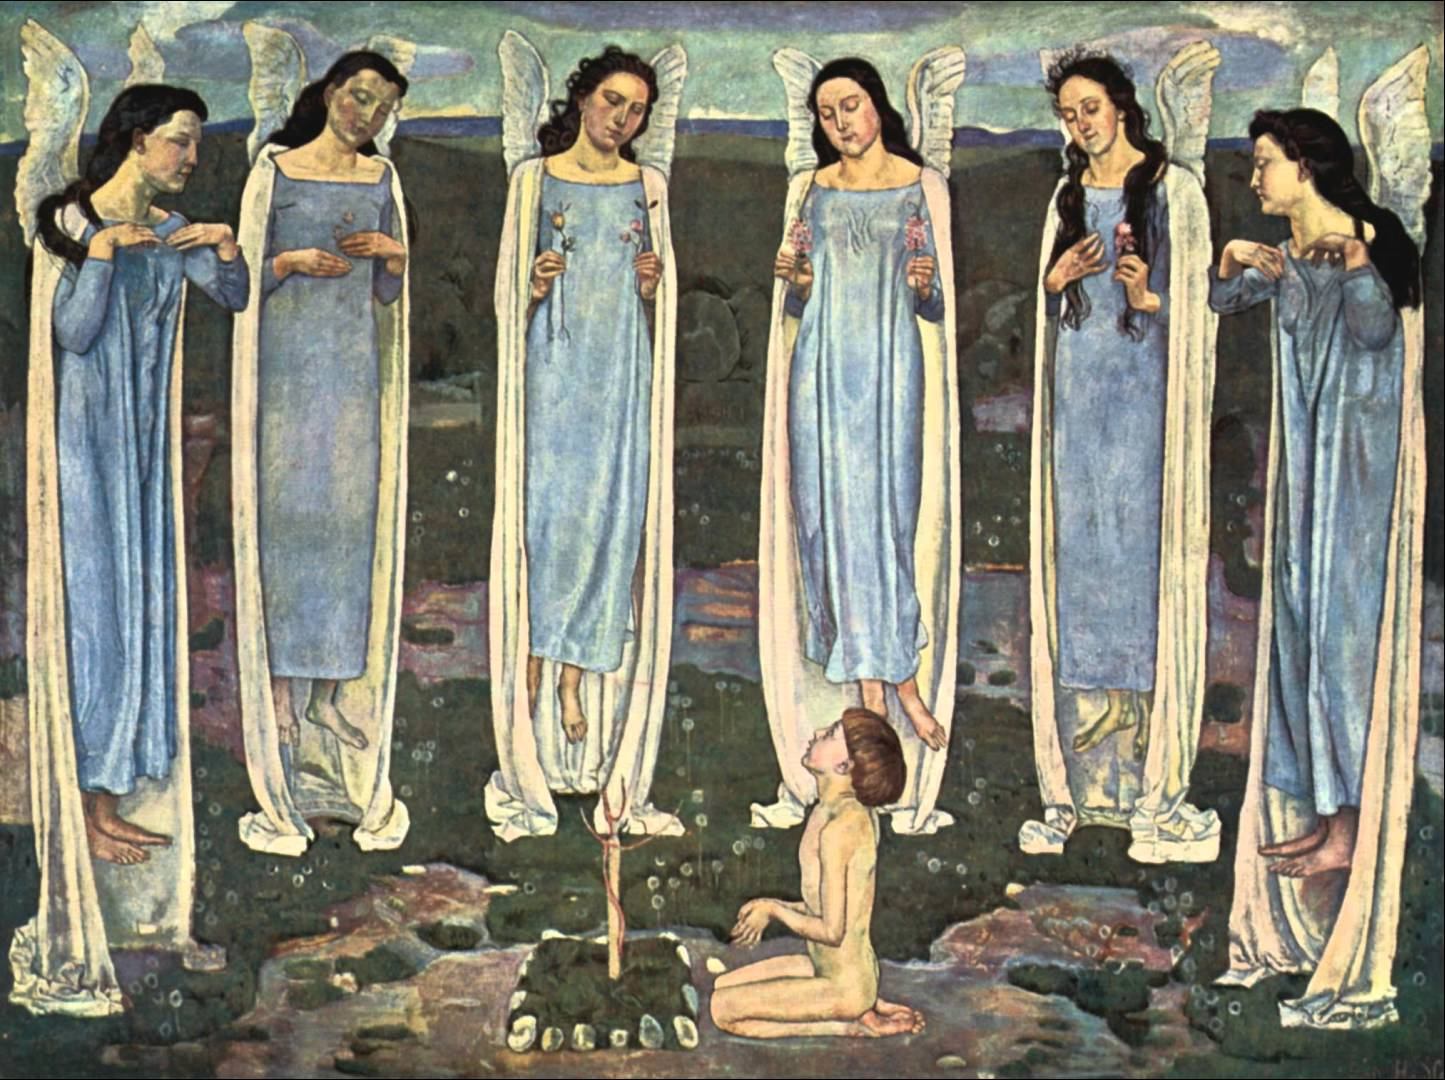 the-chosen-one-ferdinand-hodler